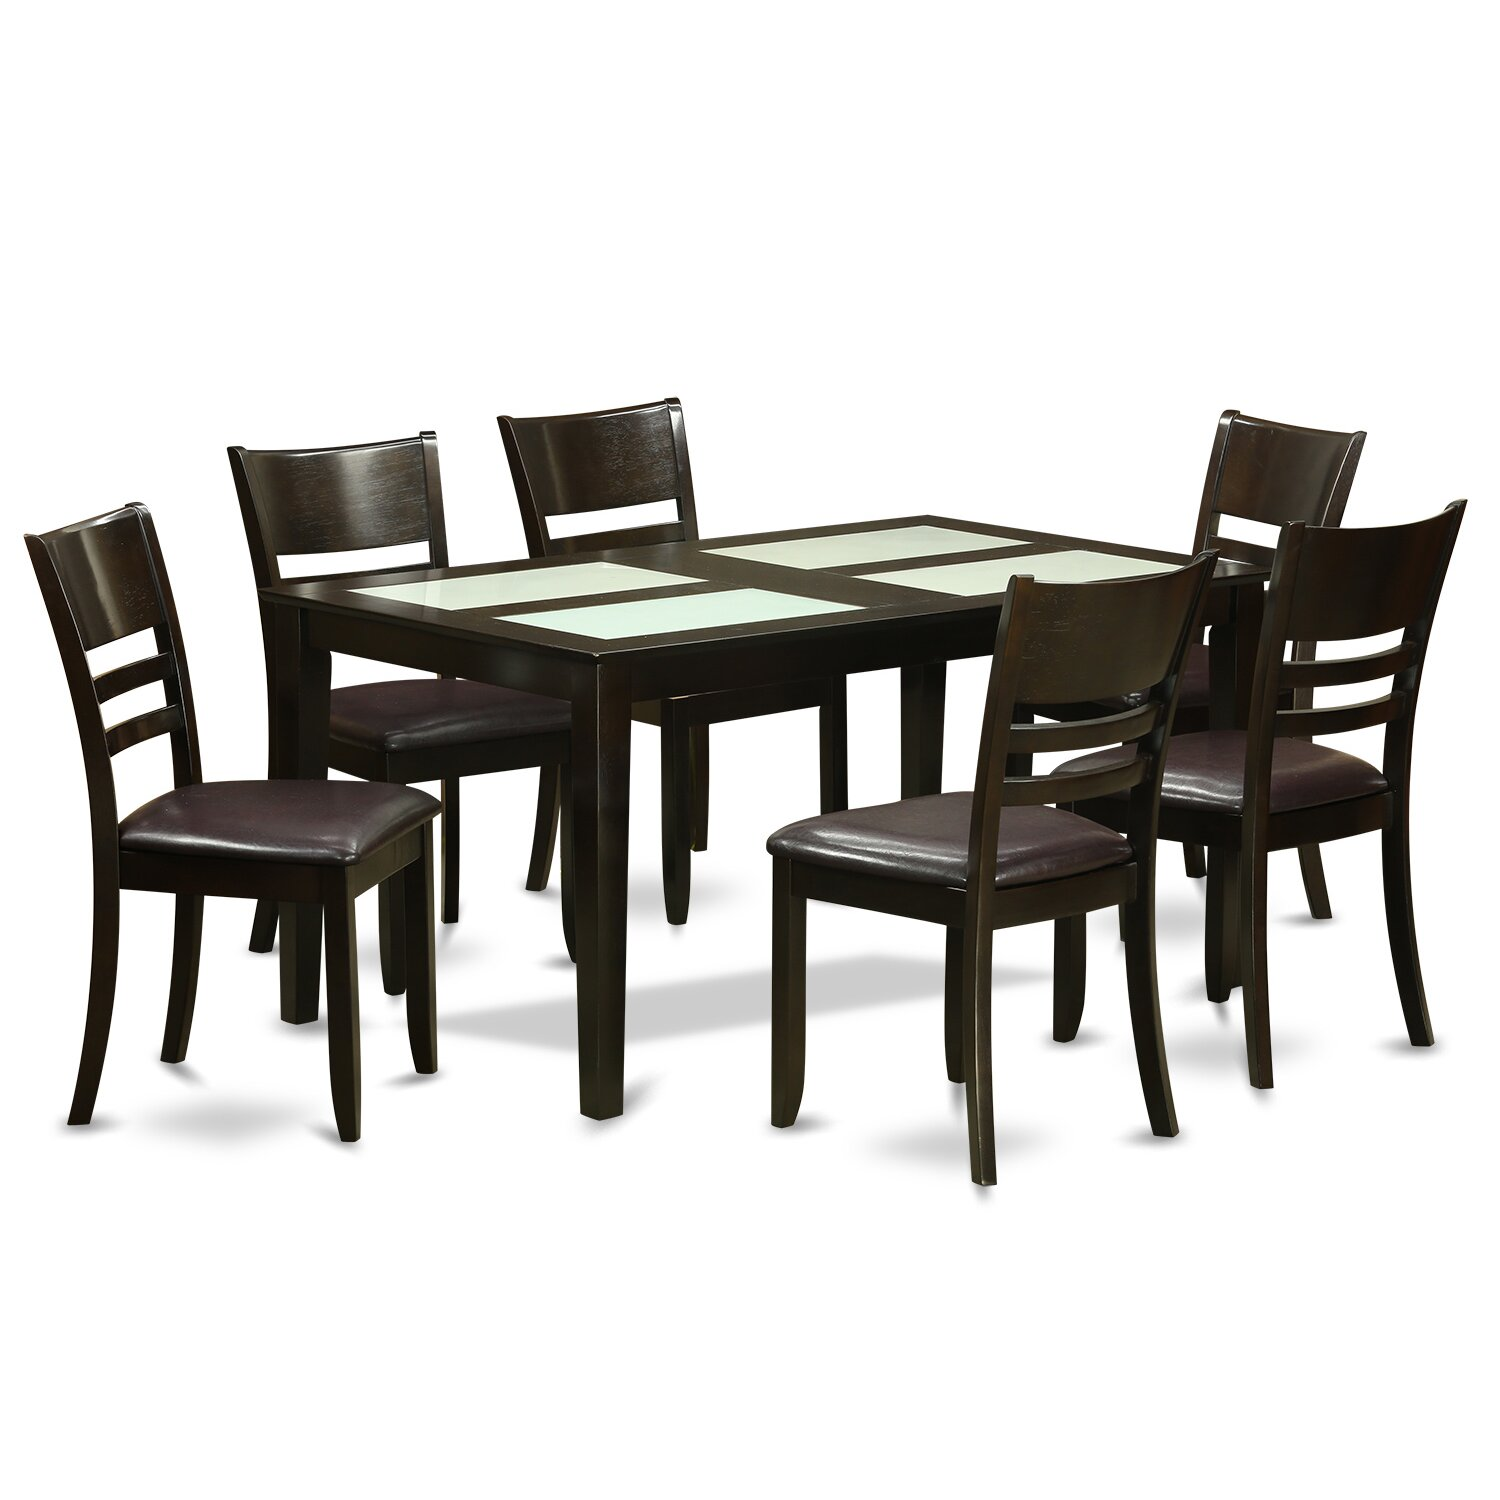 Wooden importers capri 7 piece dining set wayfair for Kitchen table set 7 piece